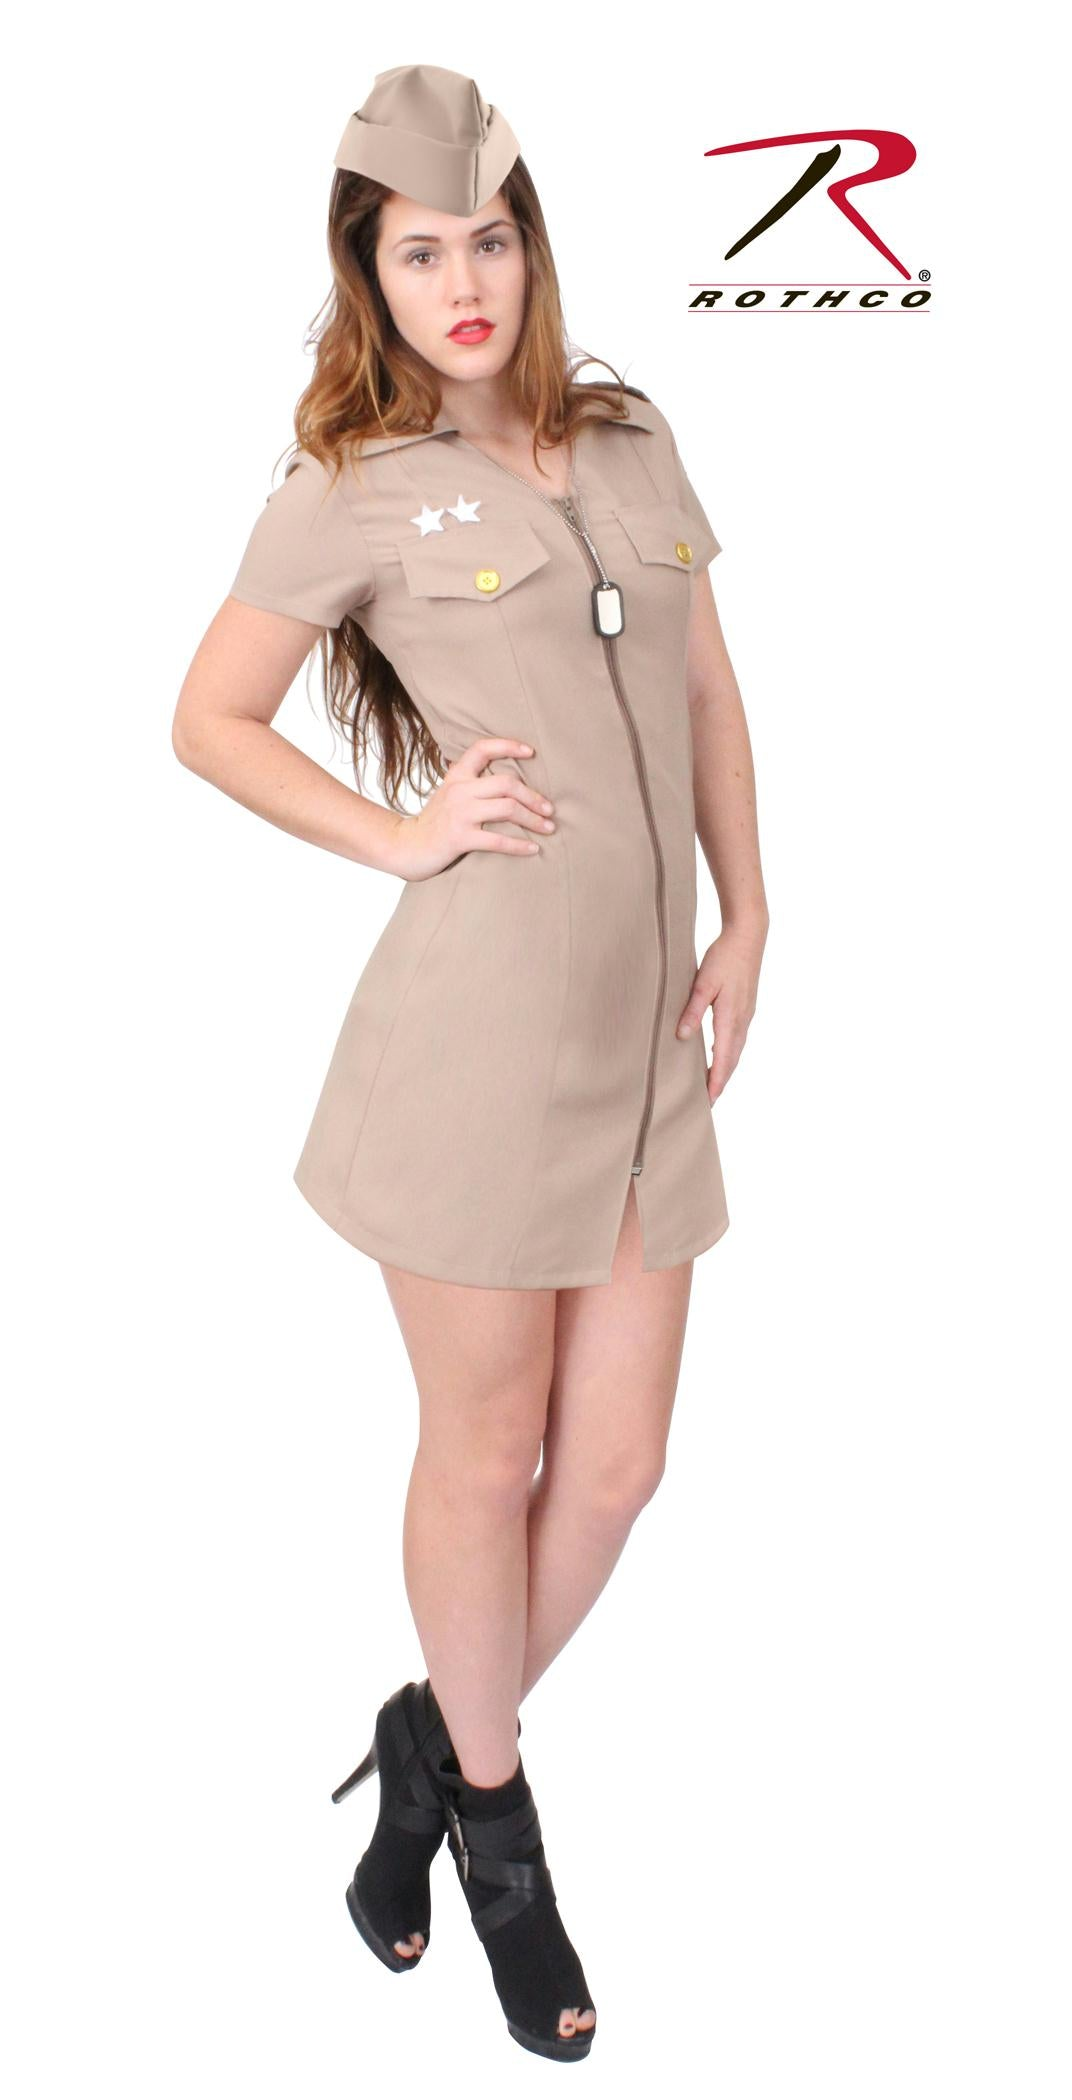 Rothco Women's Khaki Military Costume